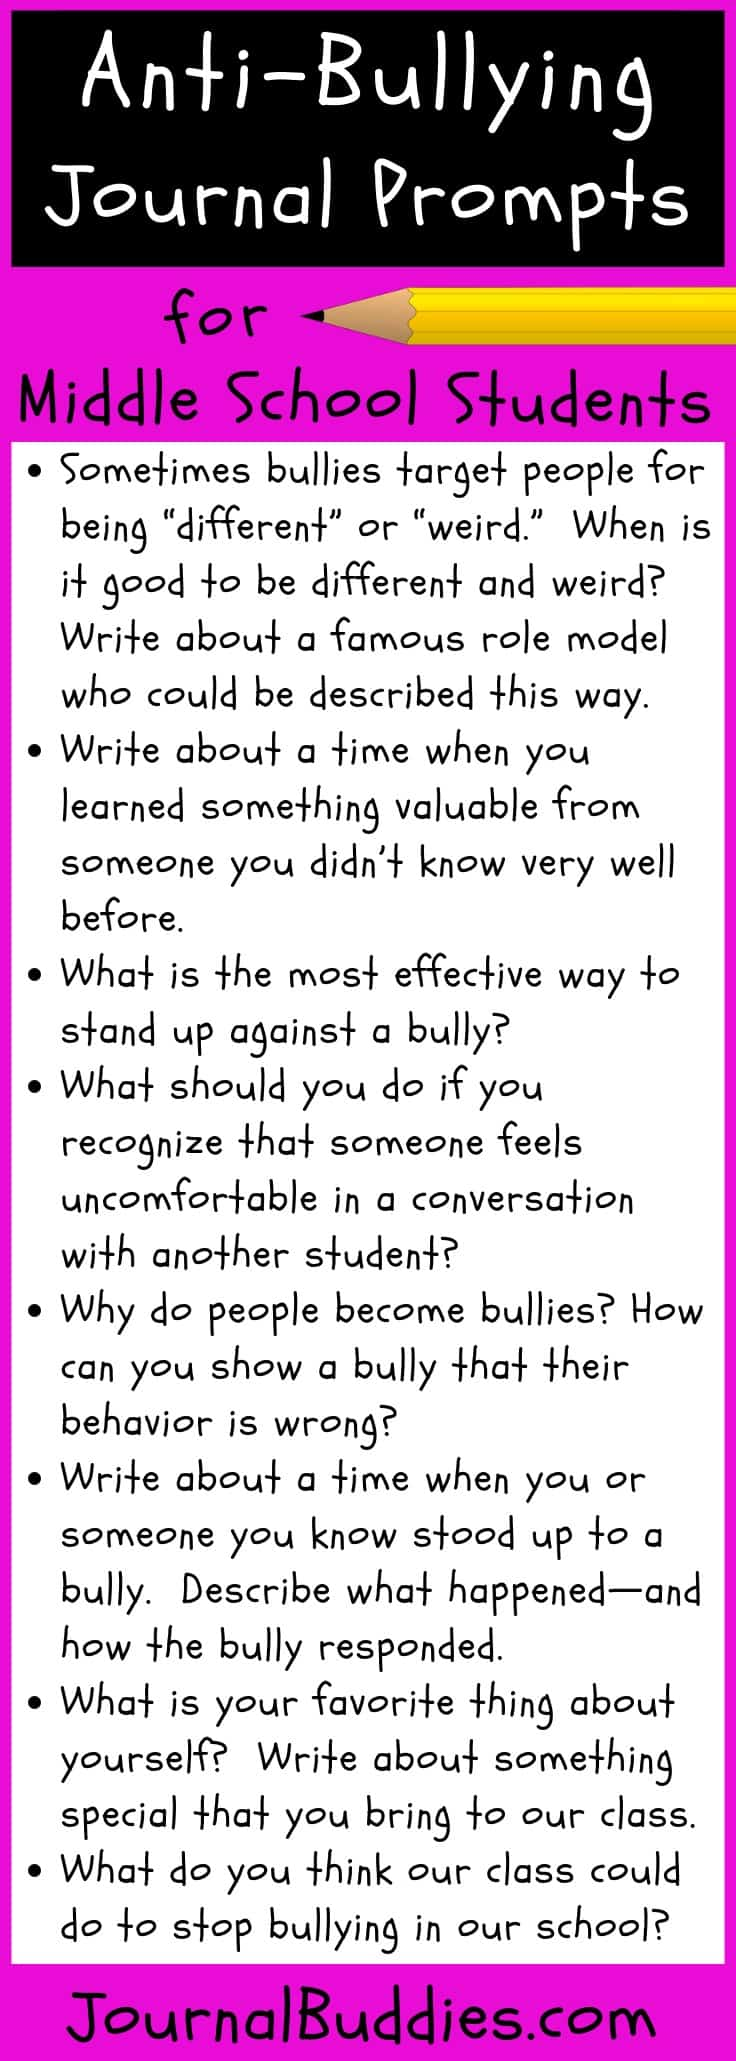 We recommend asking your students to journal about topics related to anti-bullying. As kids write and reflect on how they can better foster acceptance in the classroom, they'll become more prepared to recognize bullying when it first starts to happen—and they'll be ready to actively work against it. Here are 10 effective anti-bullying journal prompts to use with your students.